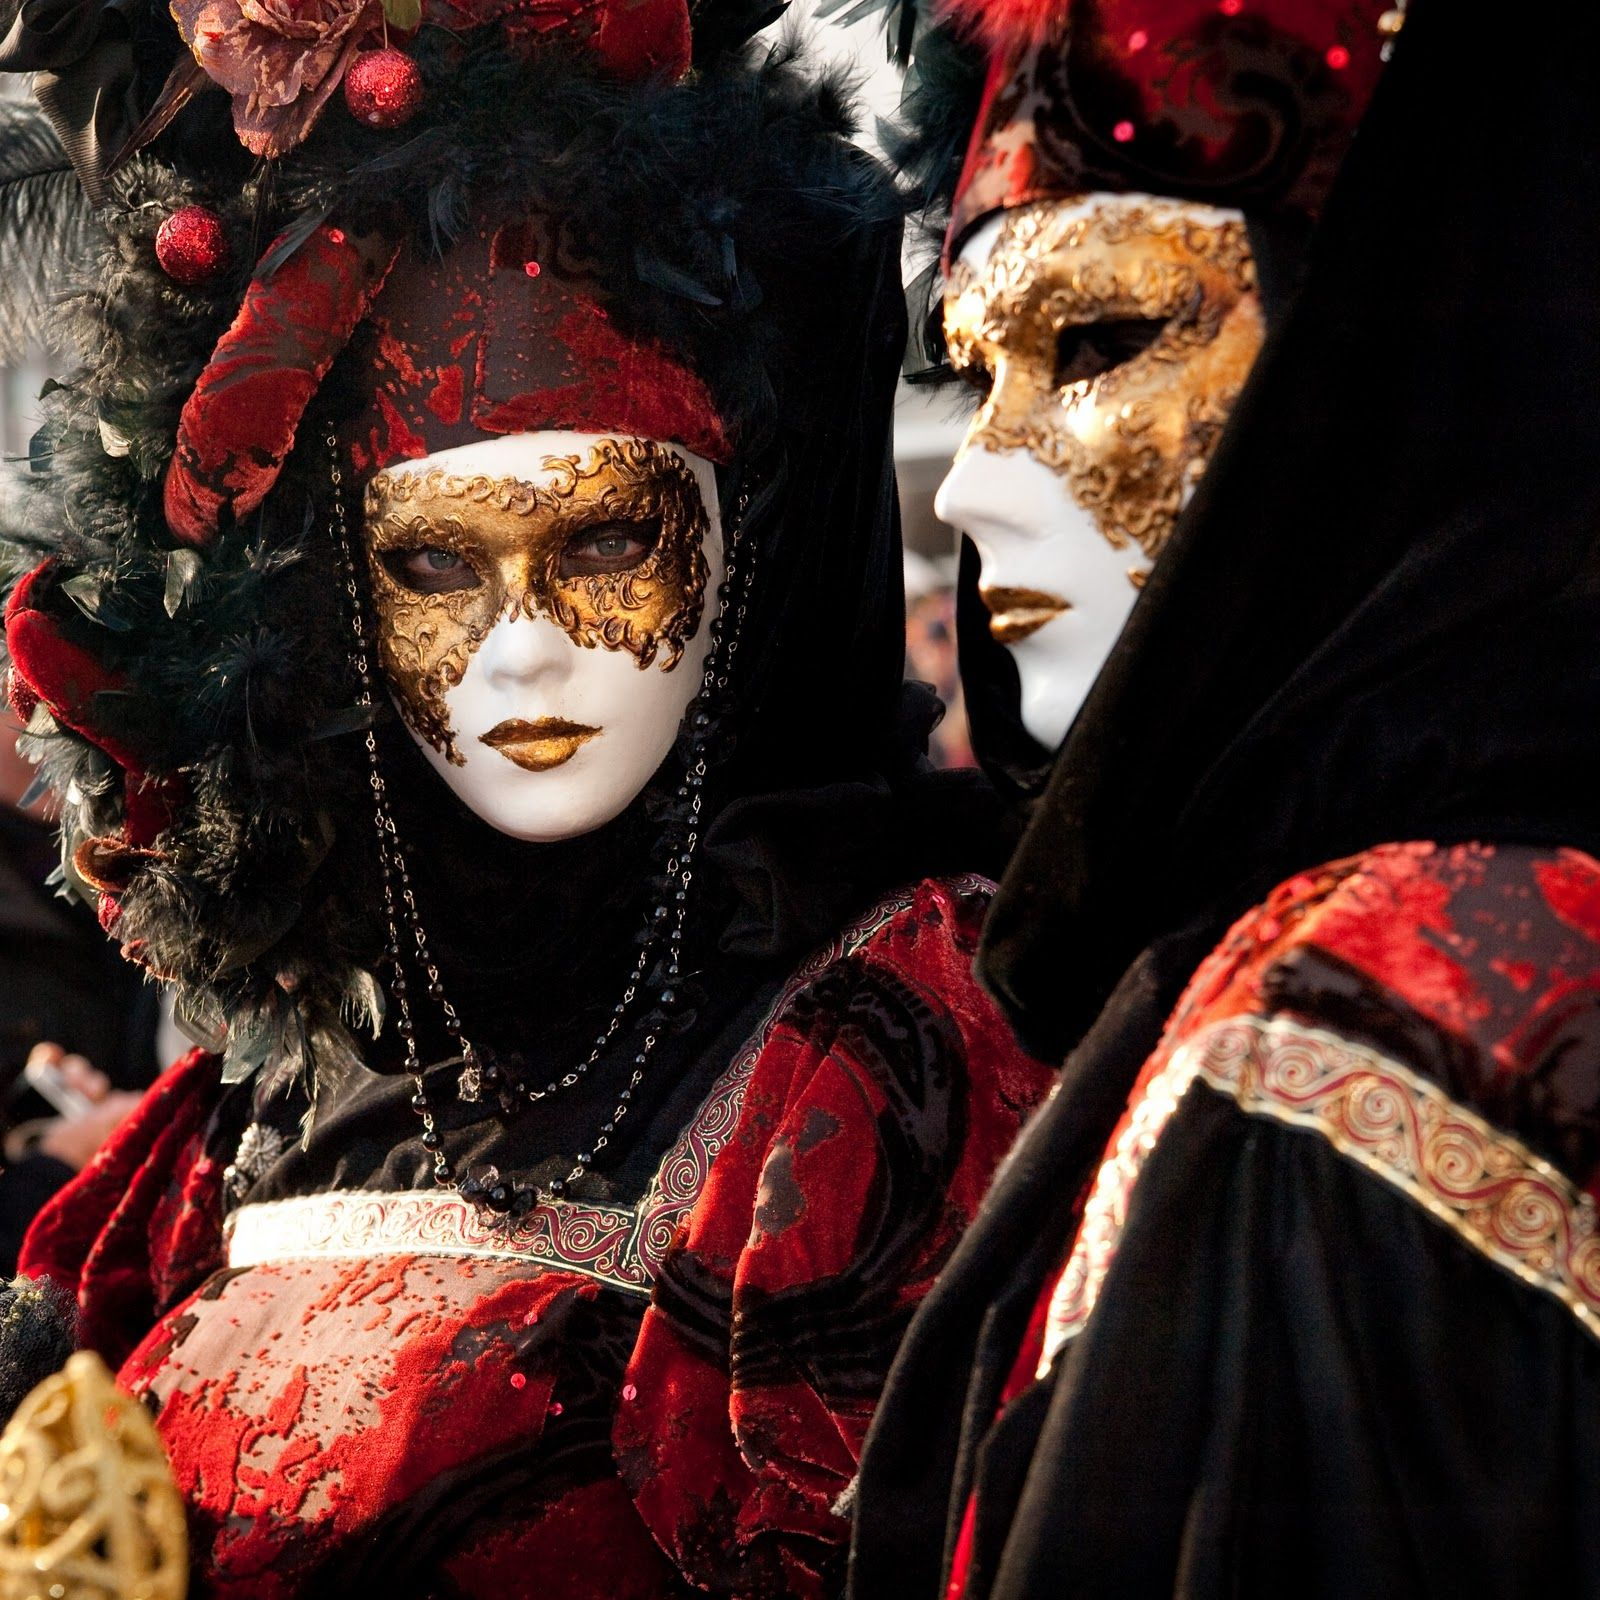 Direct From Venice: Carnival of Venice - Yearly Show of Costumes ...